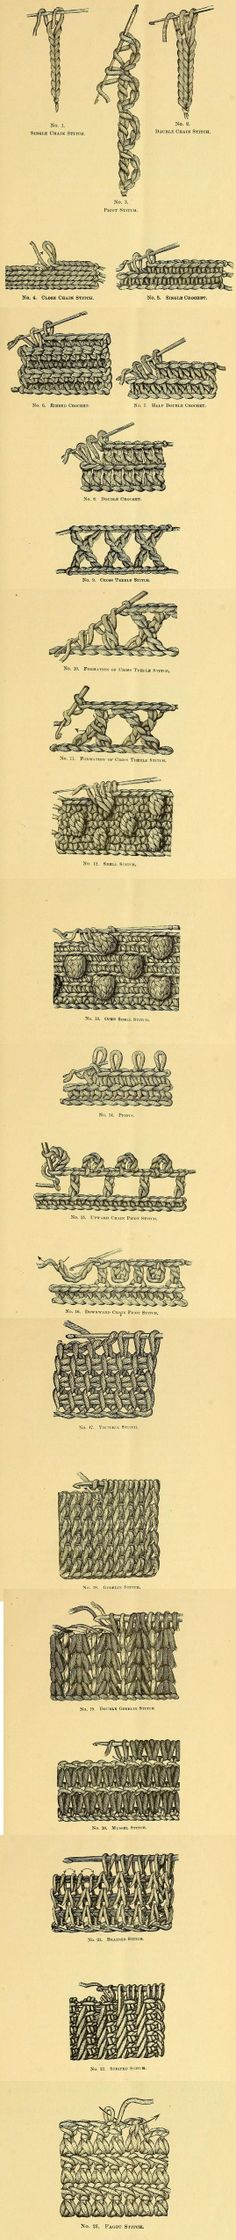 From the 1883 book, How to Crochet......read it in full on the DIY Collaboratorium's Crochet Library page.